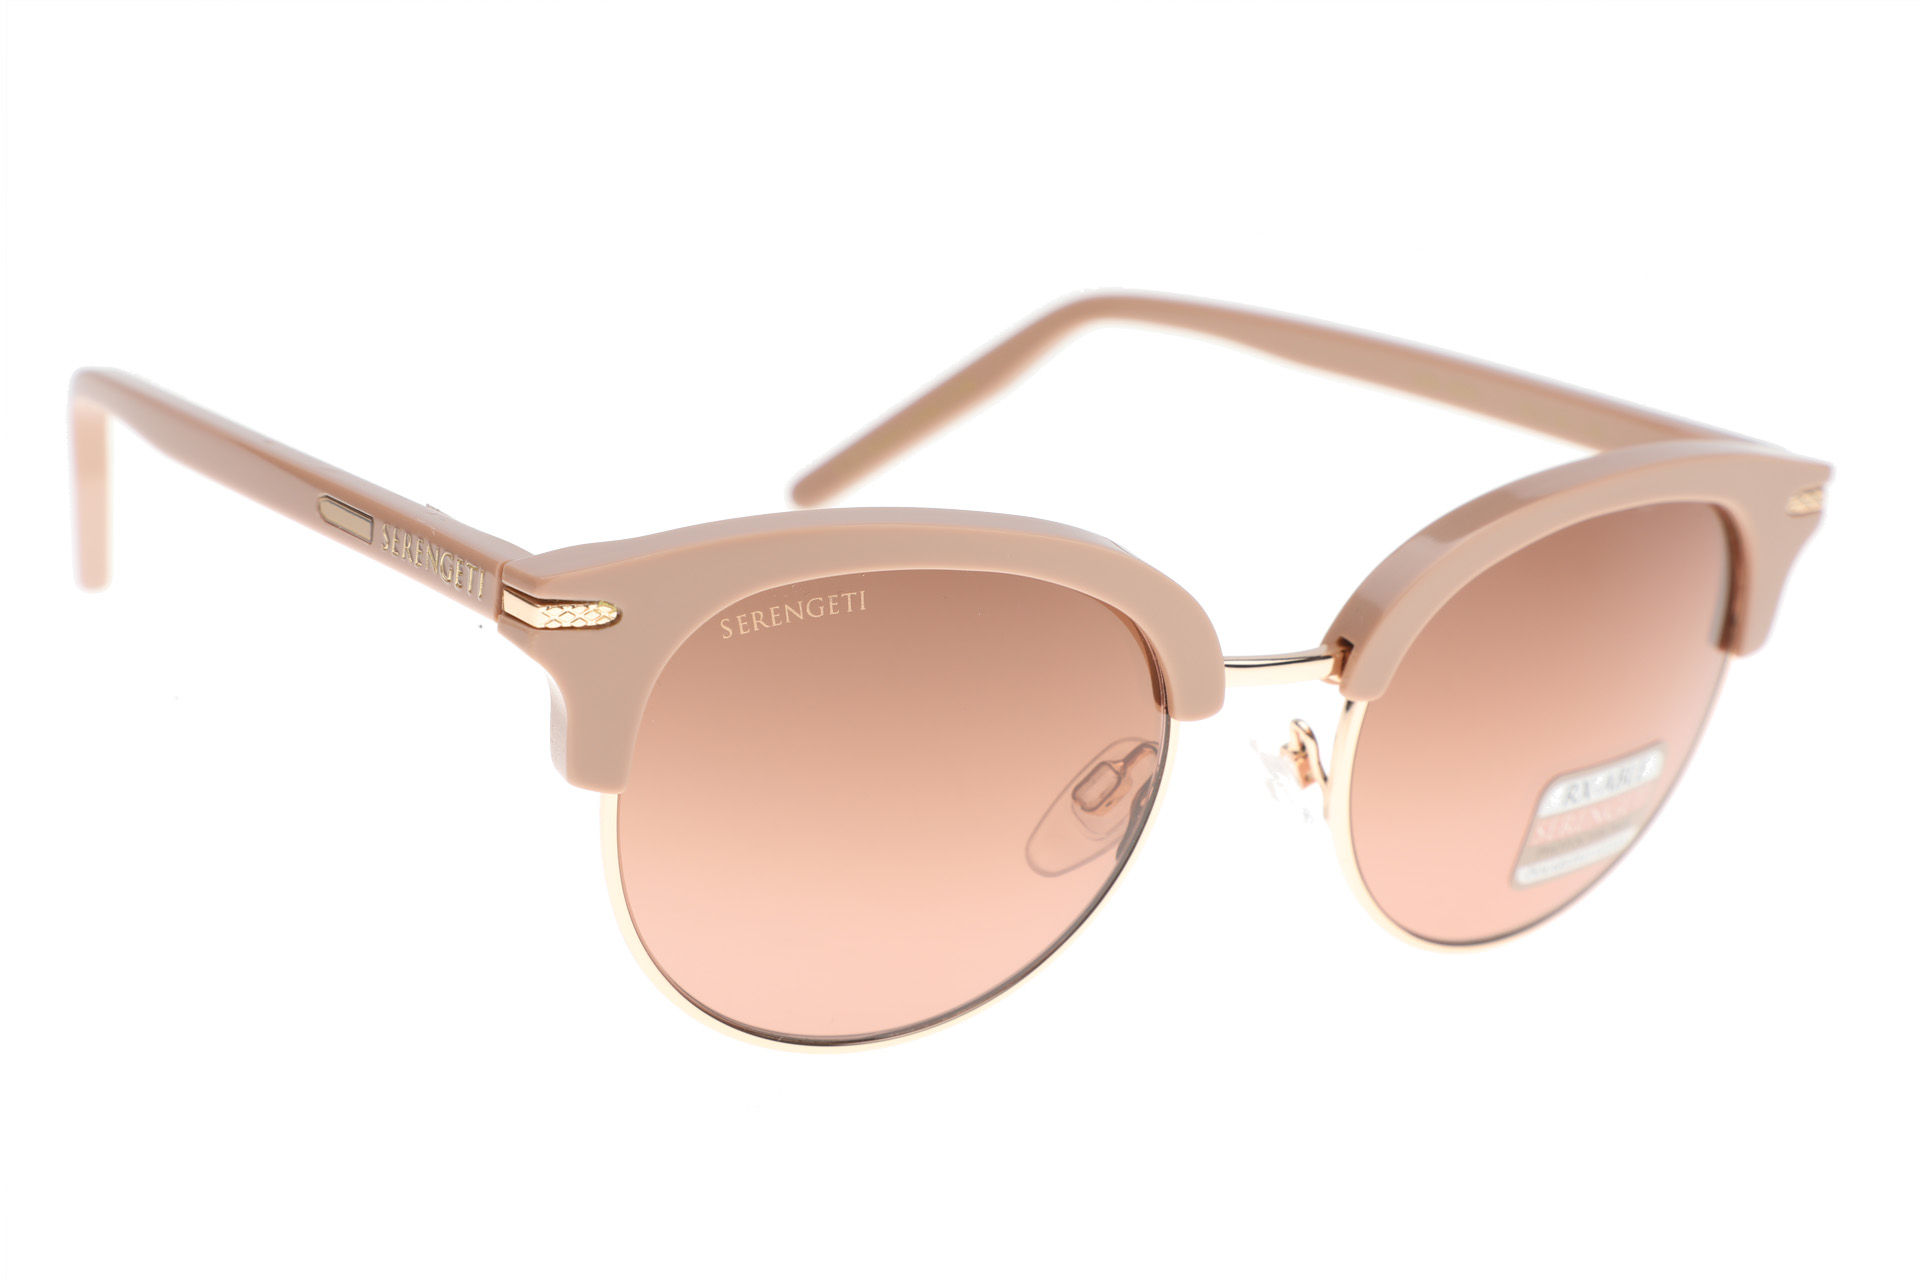 Serengeti Lela 8940 (Shiny Rose / Shiny Gold) Gepolariseerd